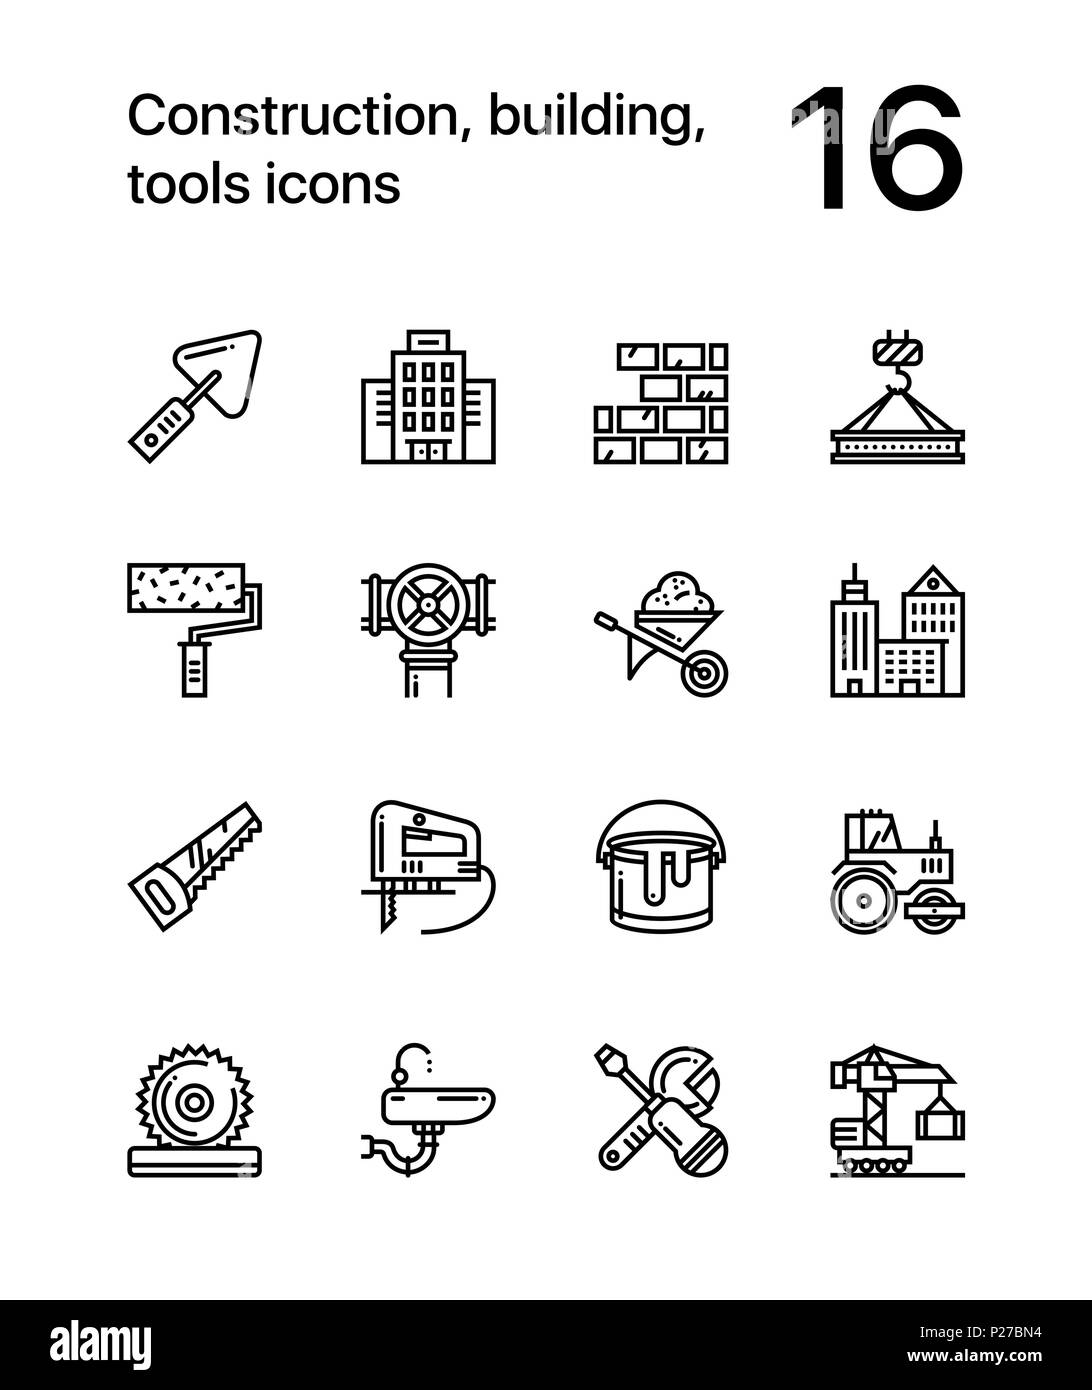 Building Construction Tools Icons Stockfotos & Building Construction ...